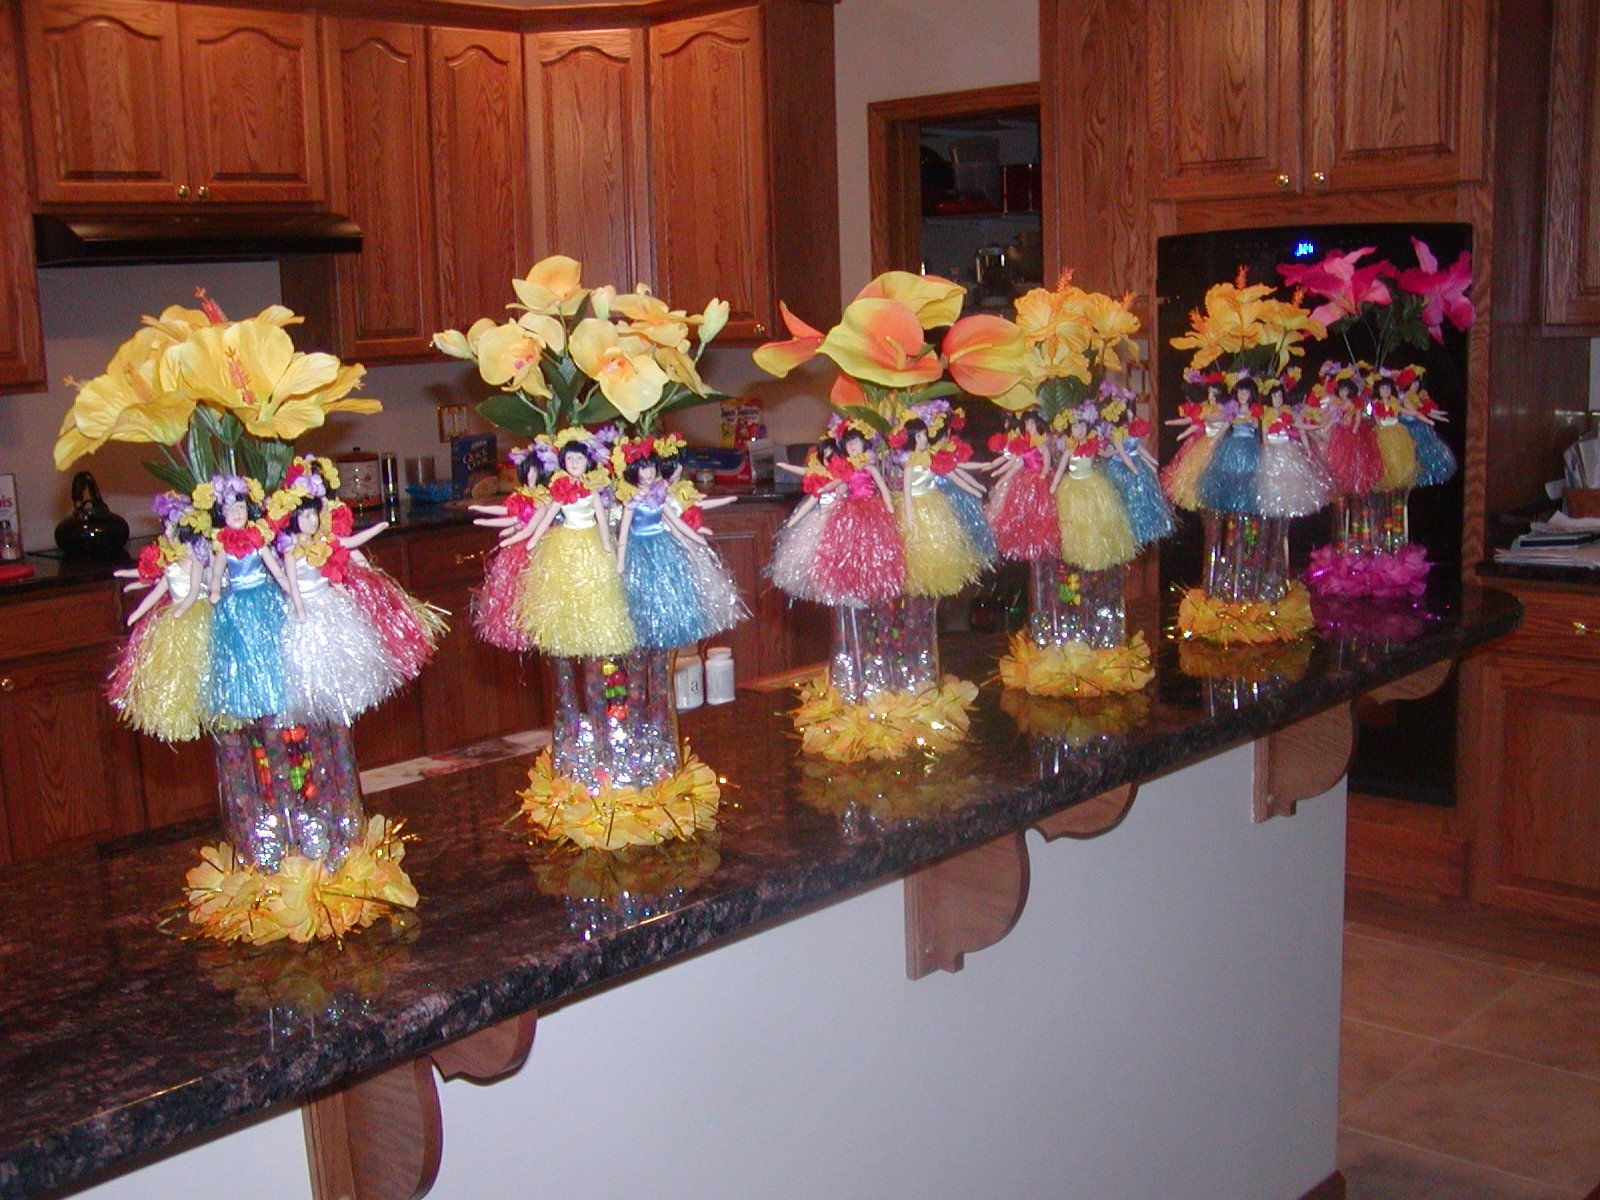 A Little Over The Top But Like Idea Of Flowers At Base Luau CenterpiecesLuau Decorations21